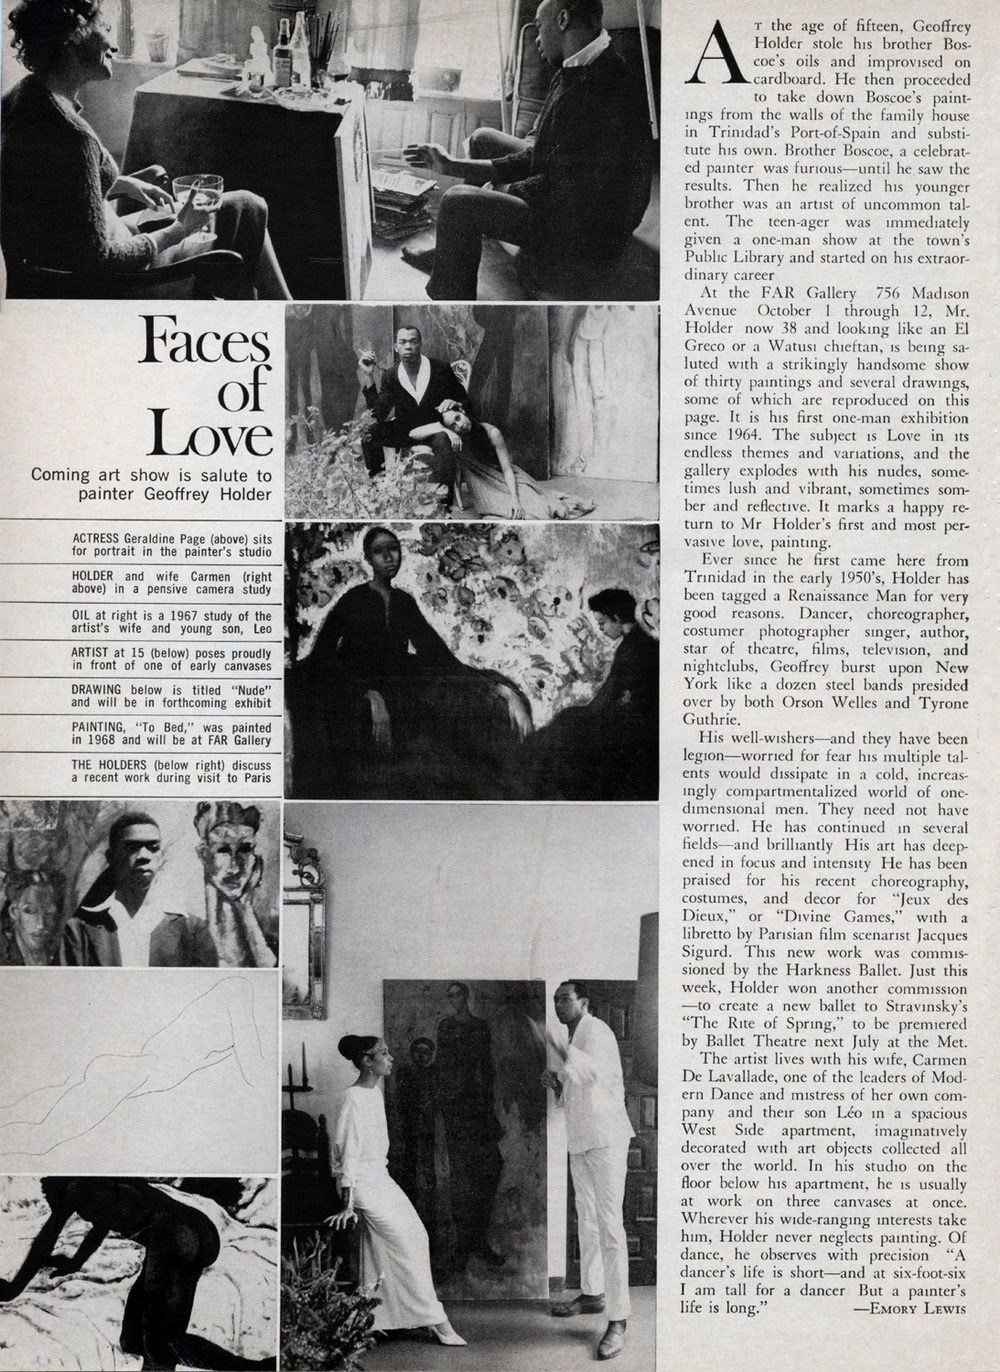 1968 INSIDE  CUE : Faces of Love A Salute to Painter GEOFFREY HOLDER